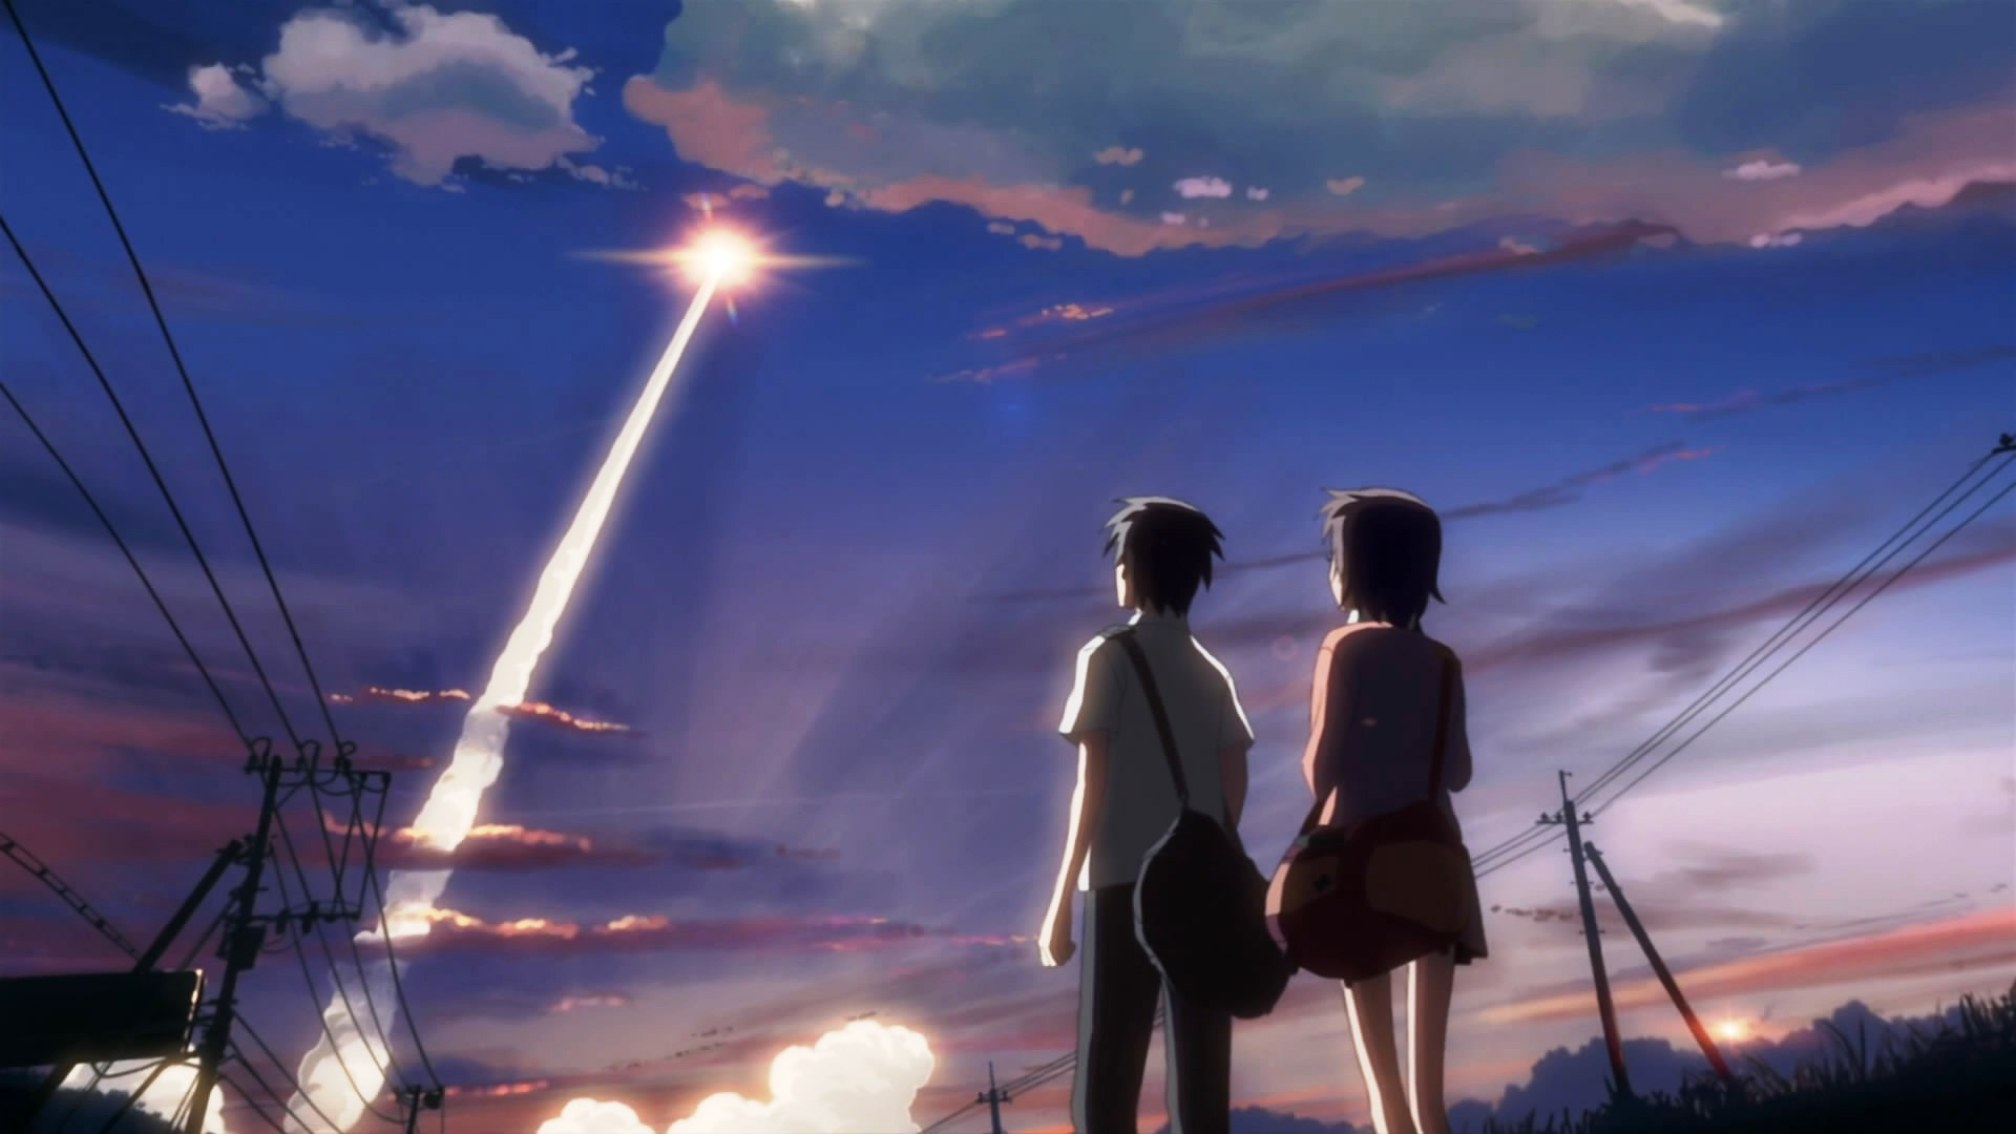 Tags anime makoto shinkai 5 centimeters per second météorites hd wallpaper